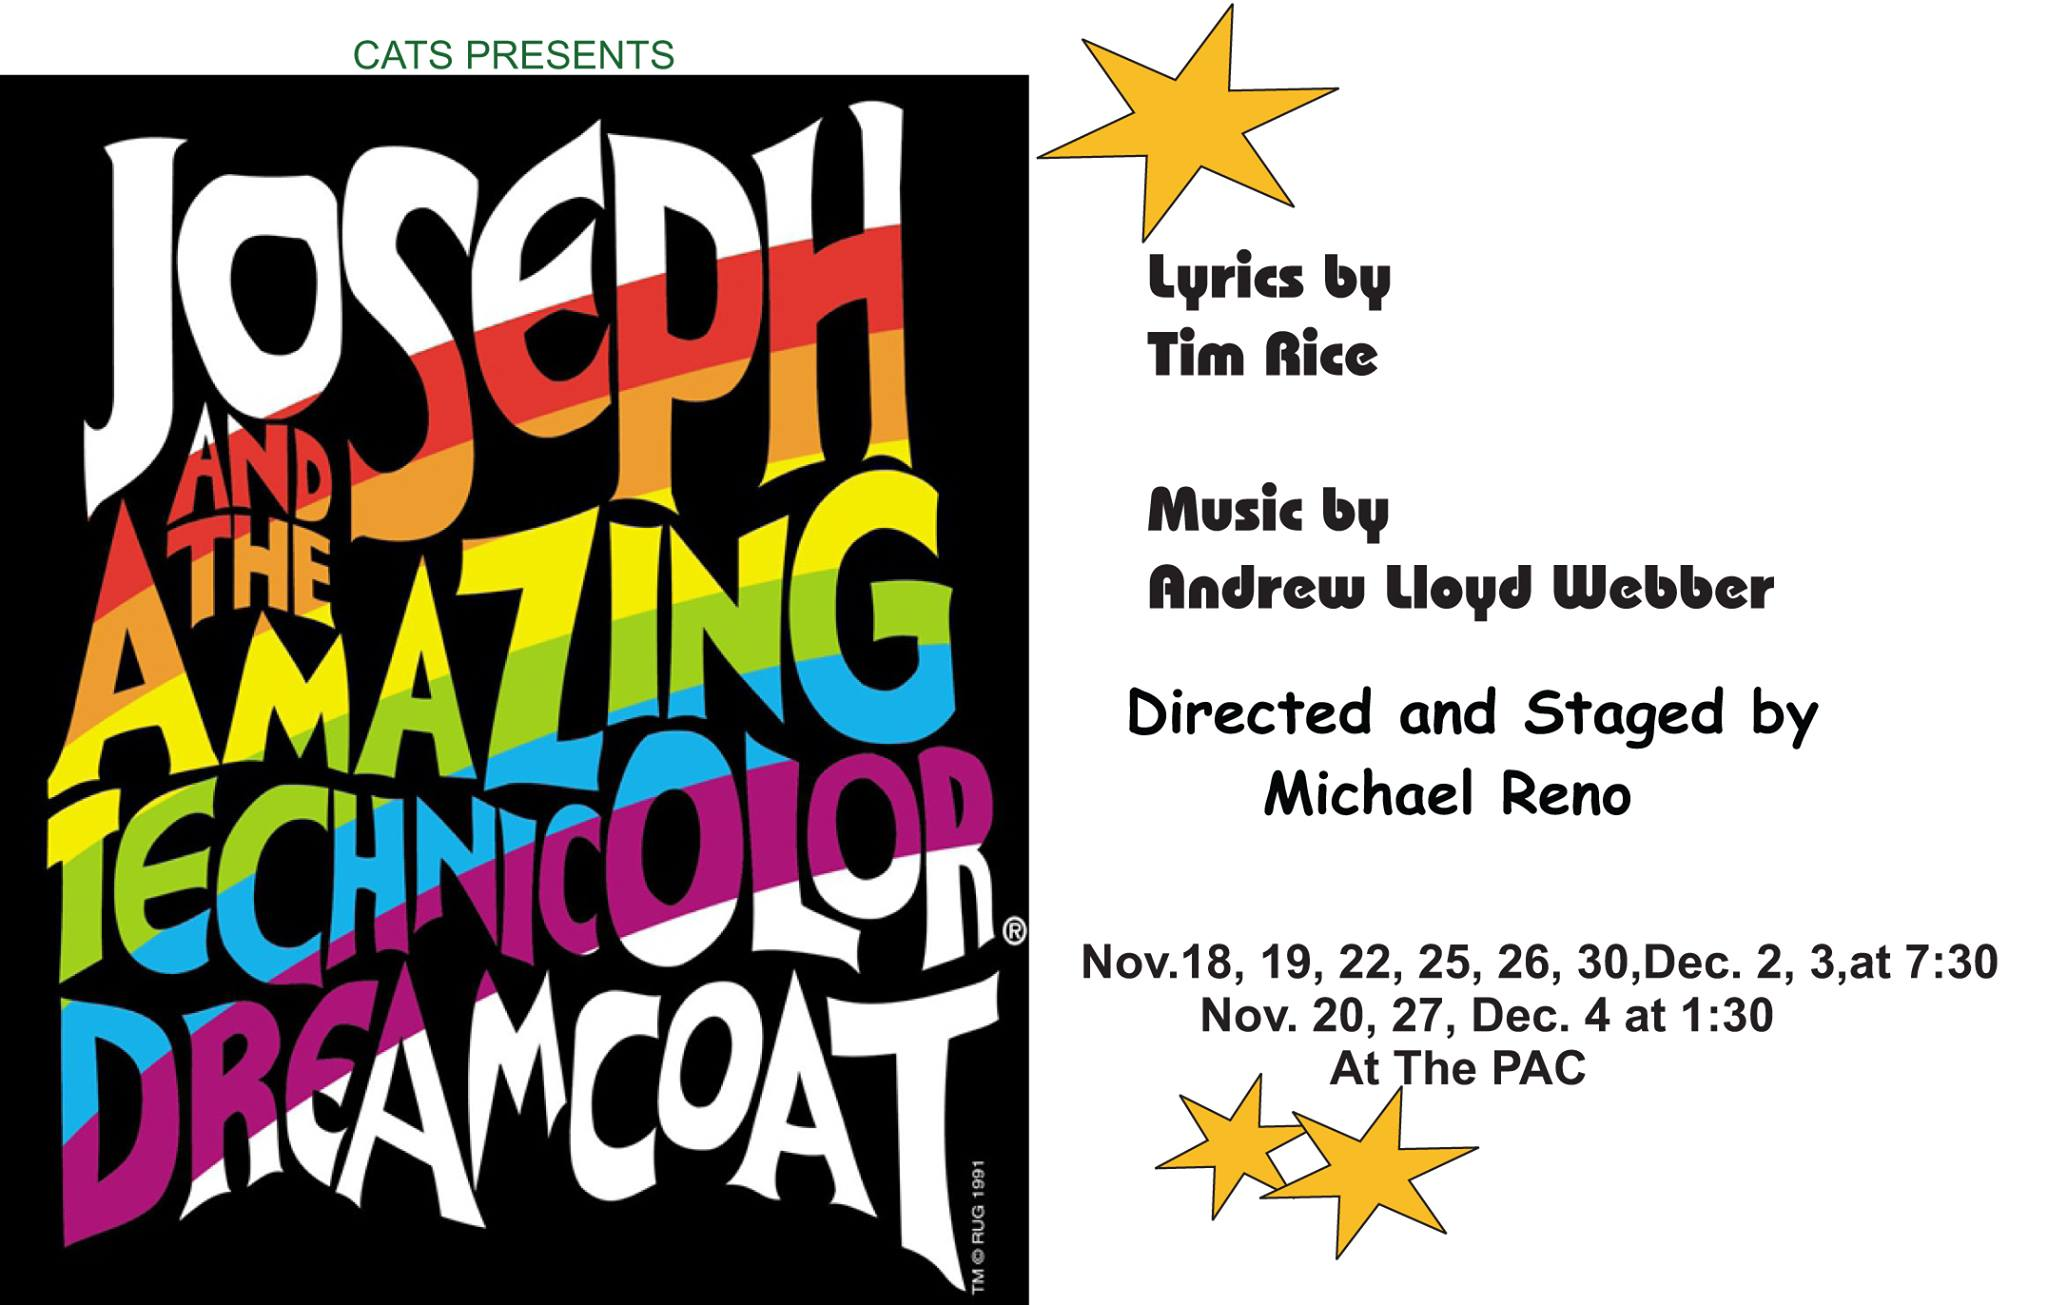 joseph and the amazing technicolor dreamcoat essay Synopsis: joseph and the amazing technicolor dreamcoat the  play opens with the narrator finding an old book, picking it up, blowing off the.